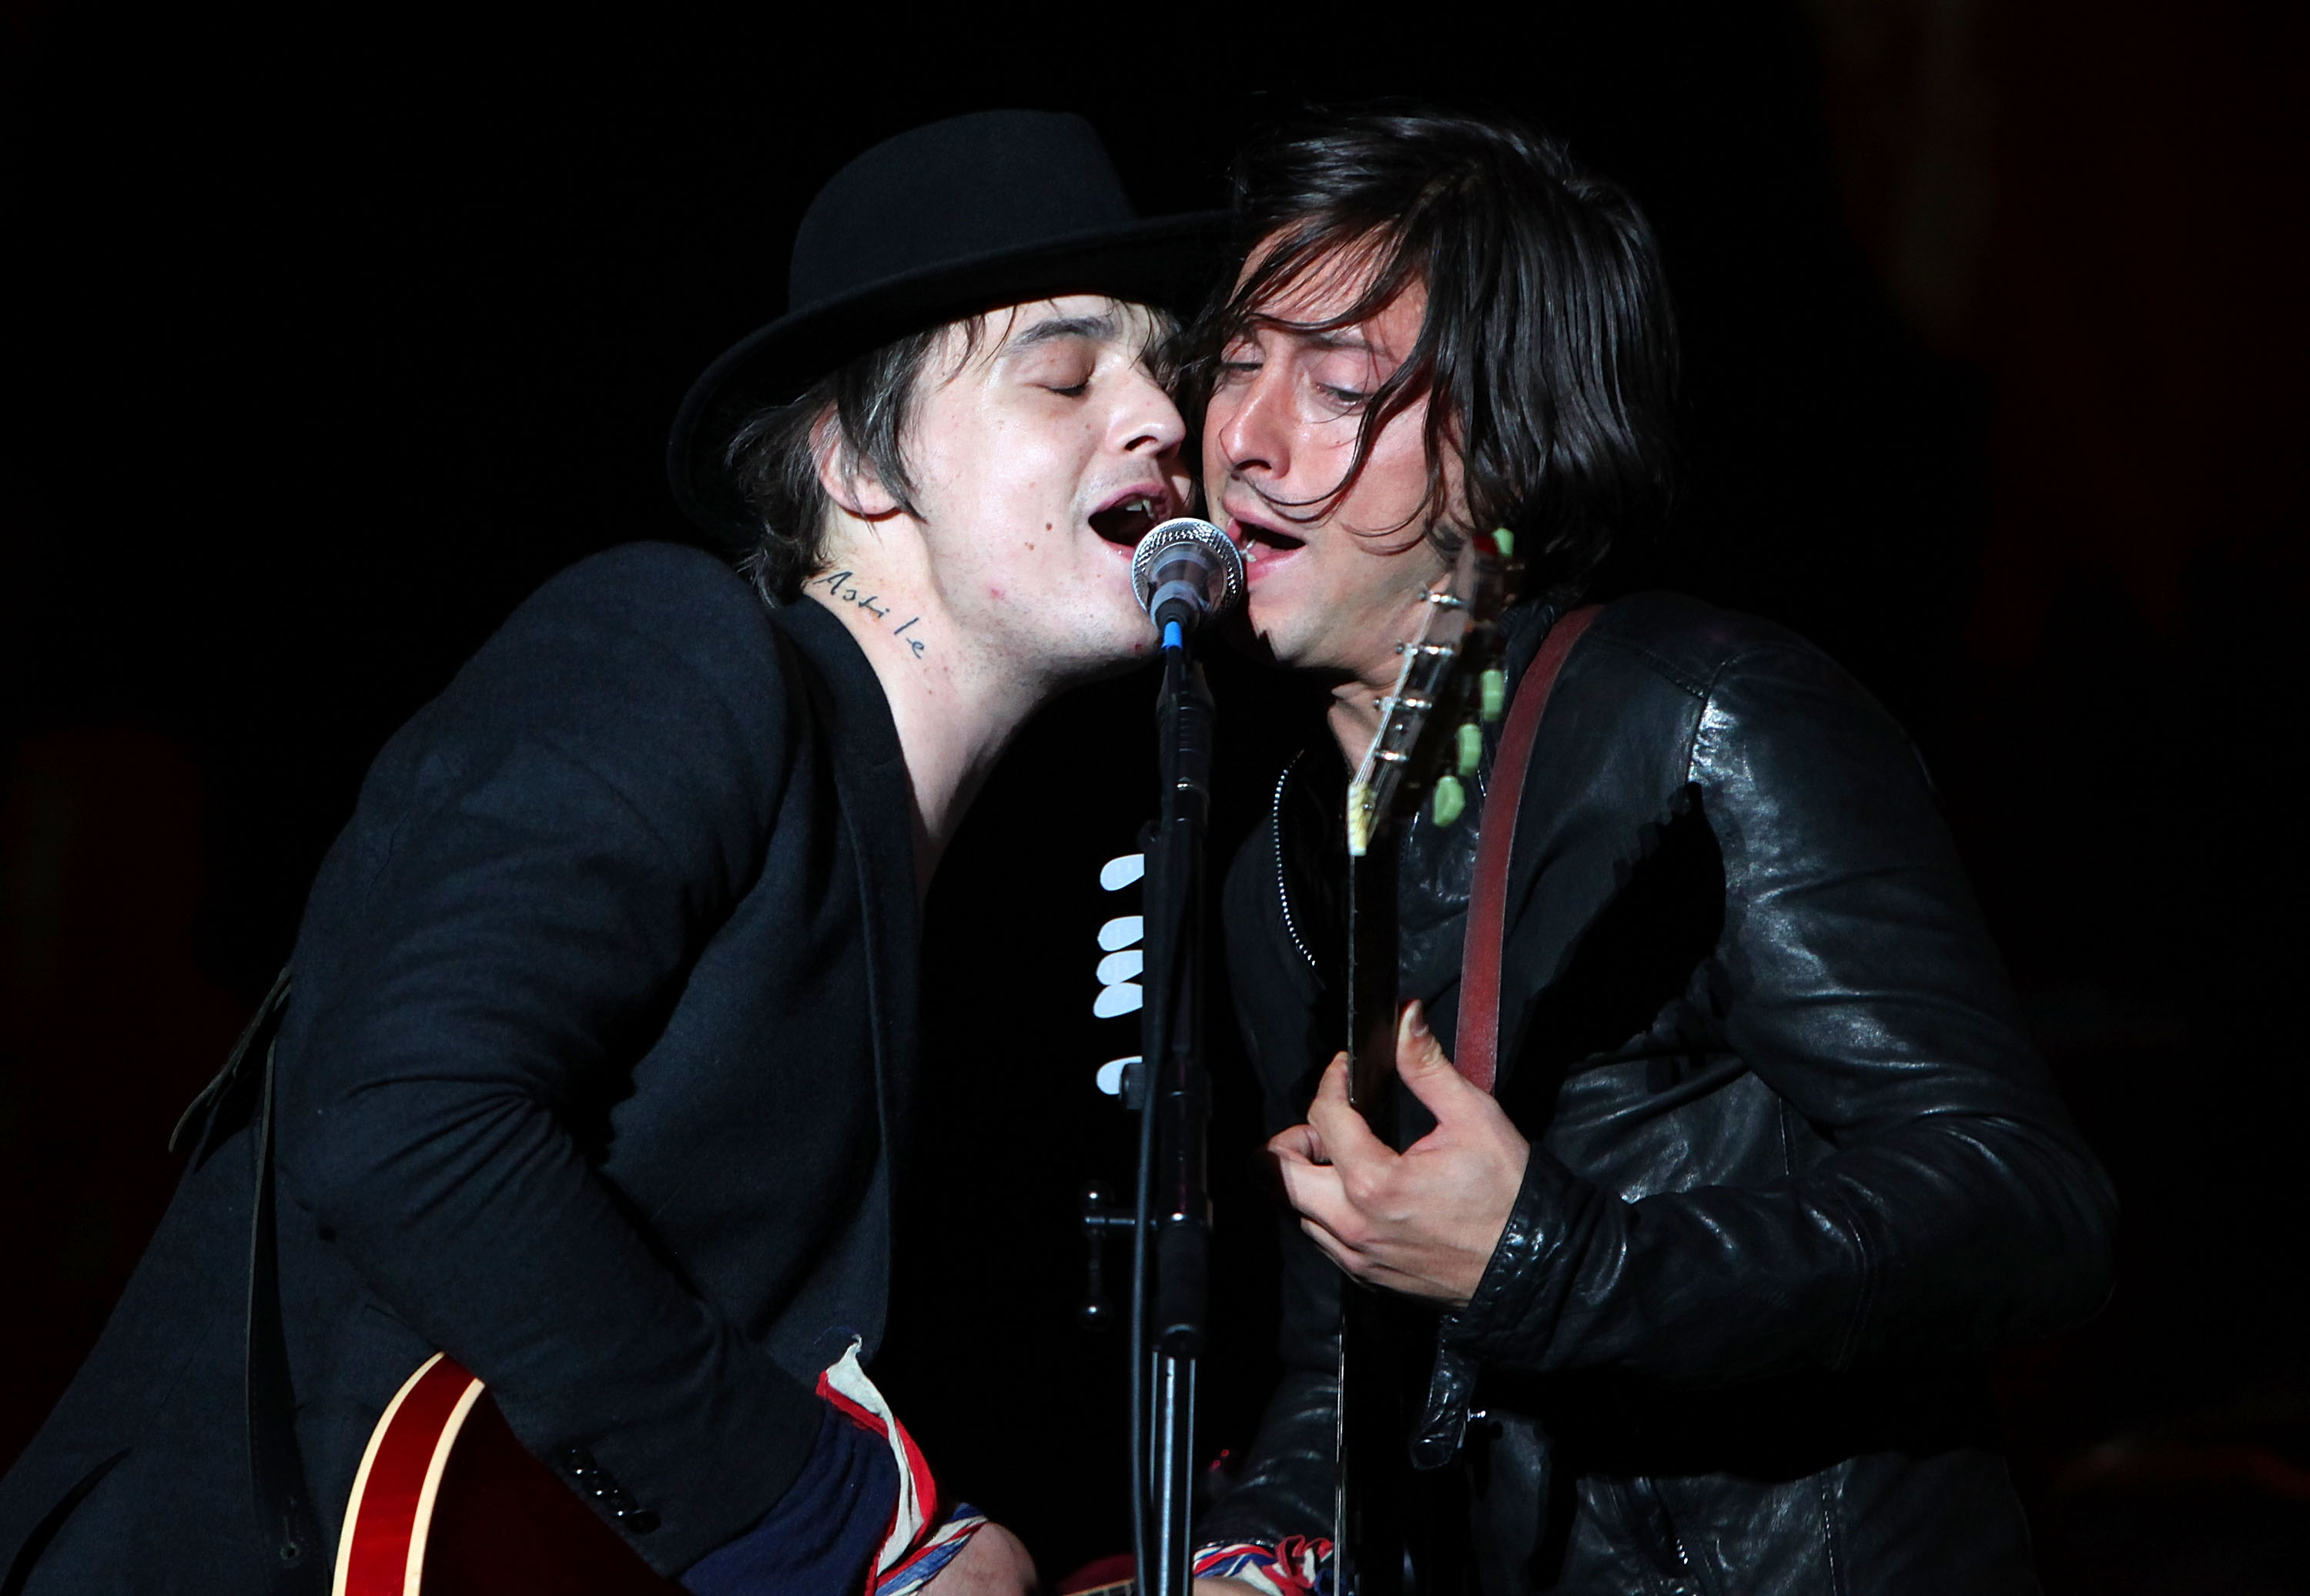 The Libertines' Pete Doherty and Carl Barat are opening their own bar together